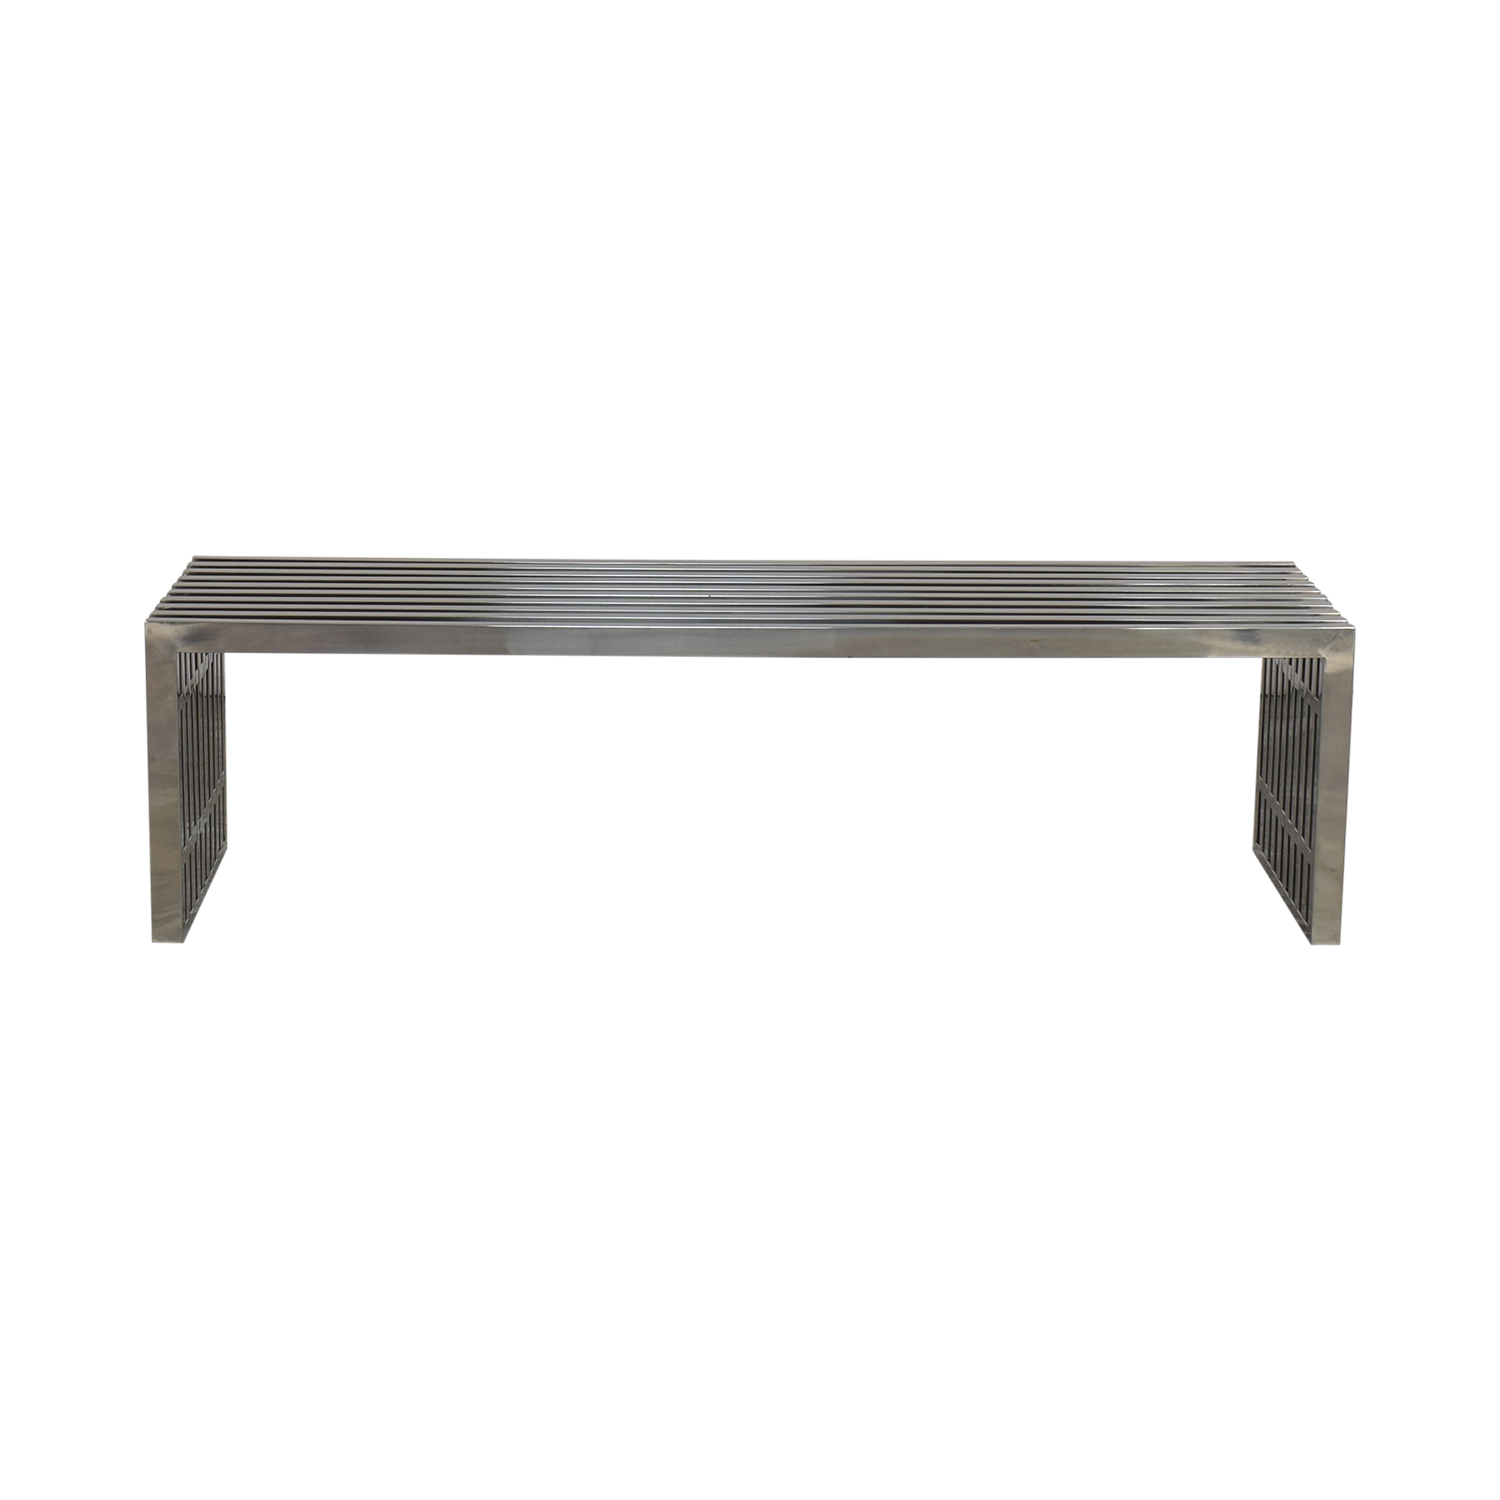 LexMod LexMod Gridiron Large Bench ct